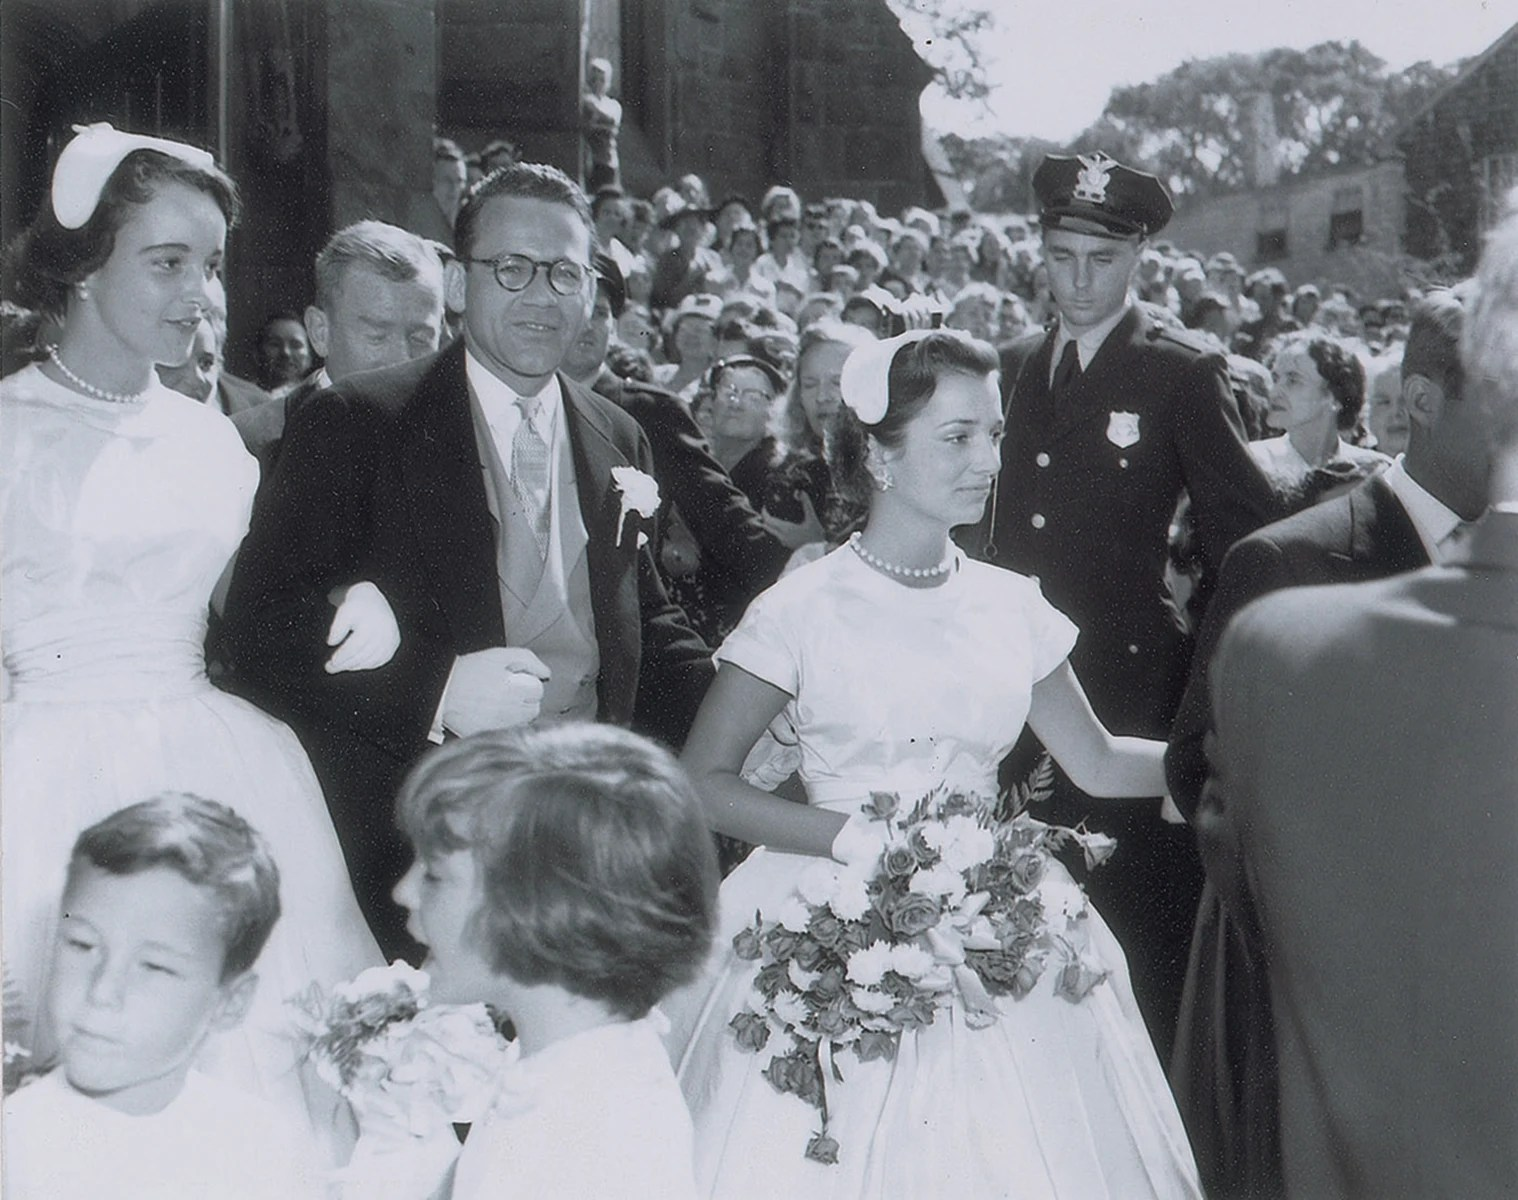 Never Before Seen Wedding Photos Of JFK And Jackie Kennedy